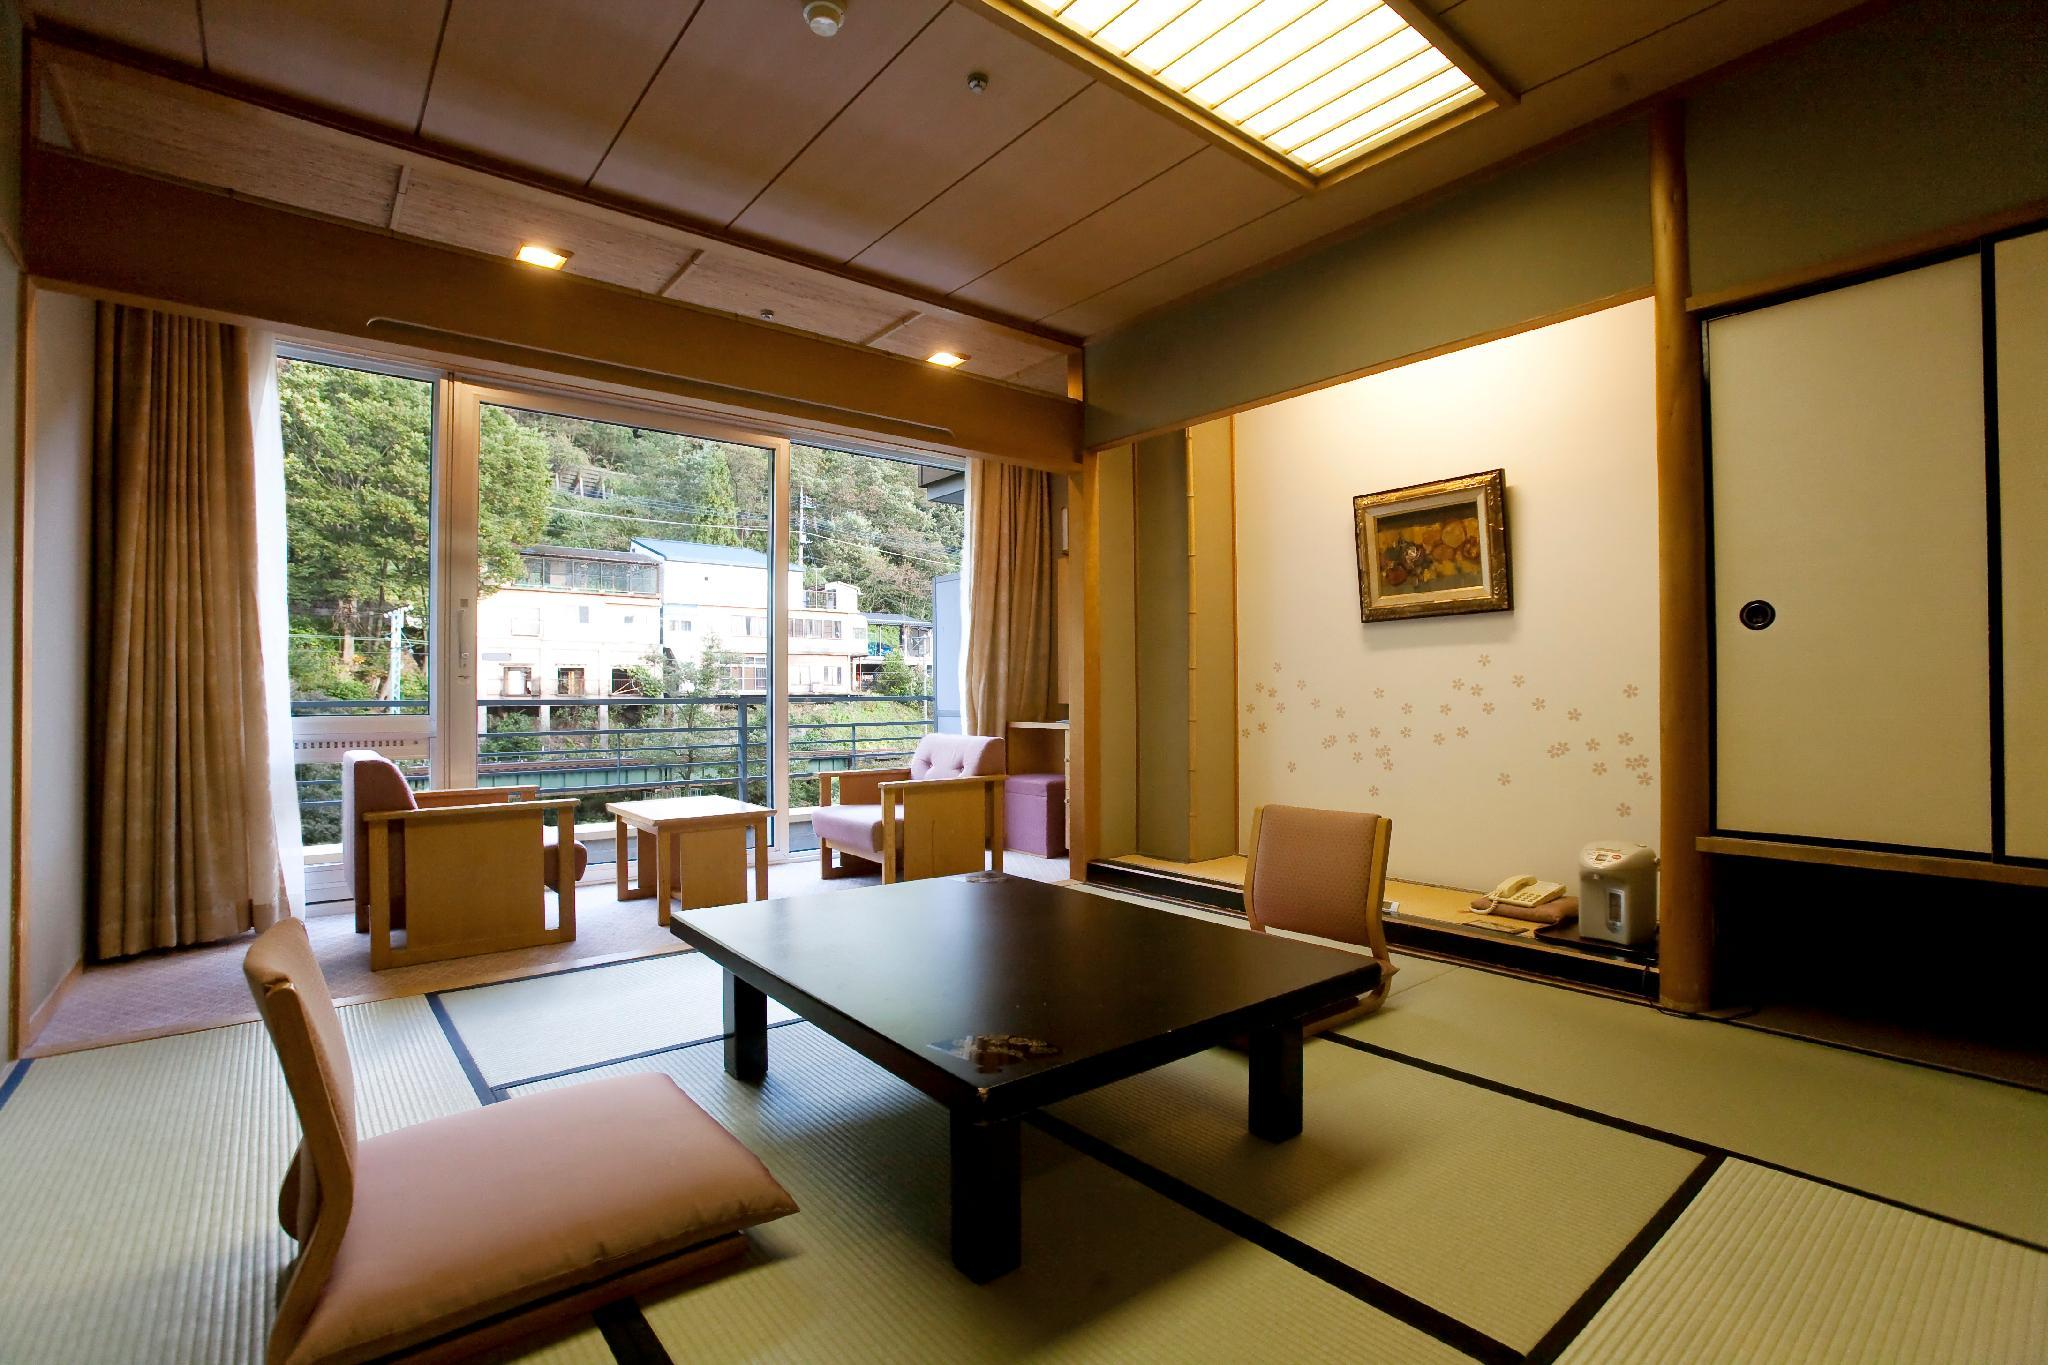 Rom i japansk stil for 4 personer (Japanese Style Room for 4 People)